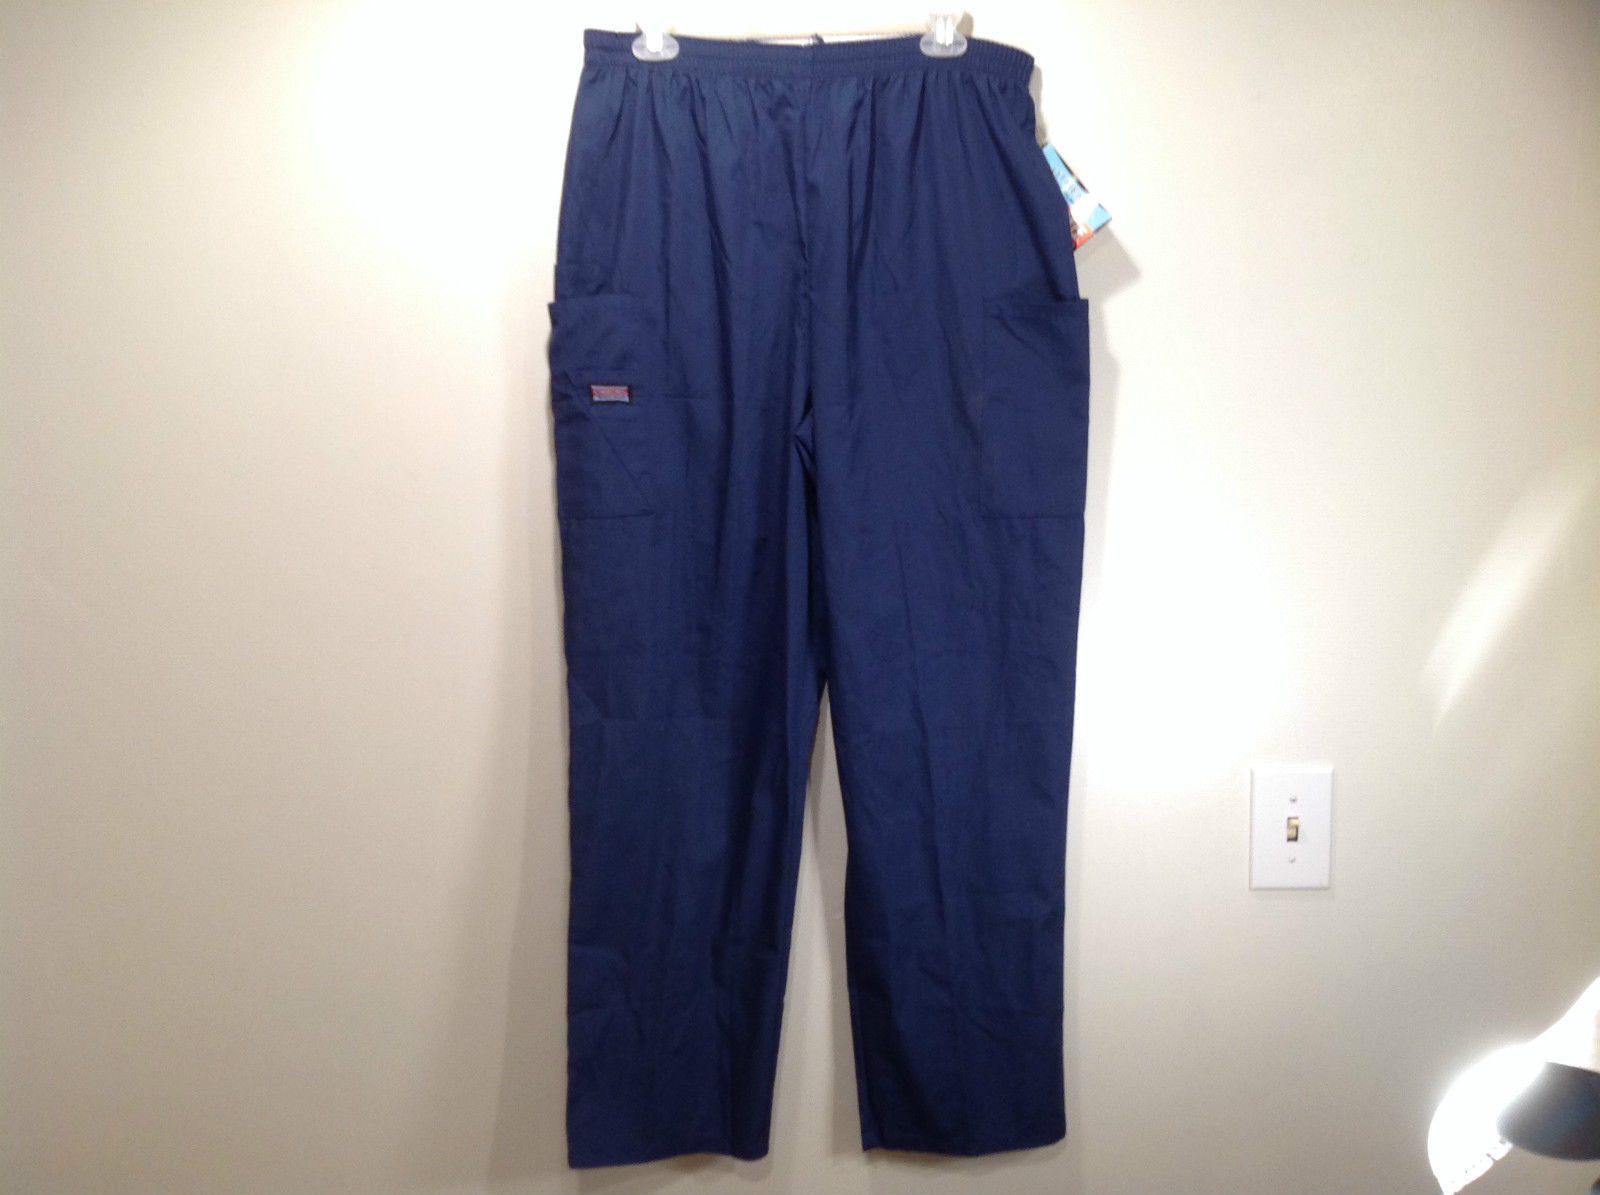 Cherokee Workwear Dark Blue Uniform Work Pants Stretchy Waist Size L NEW